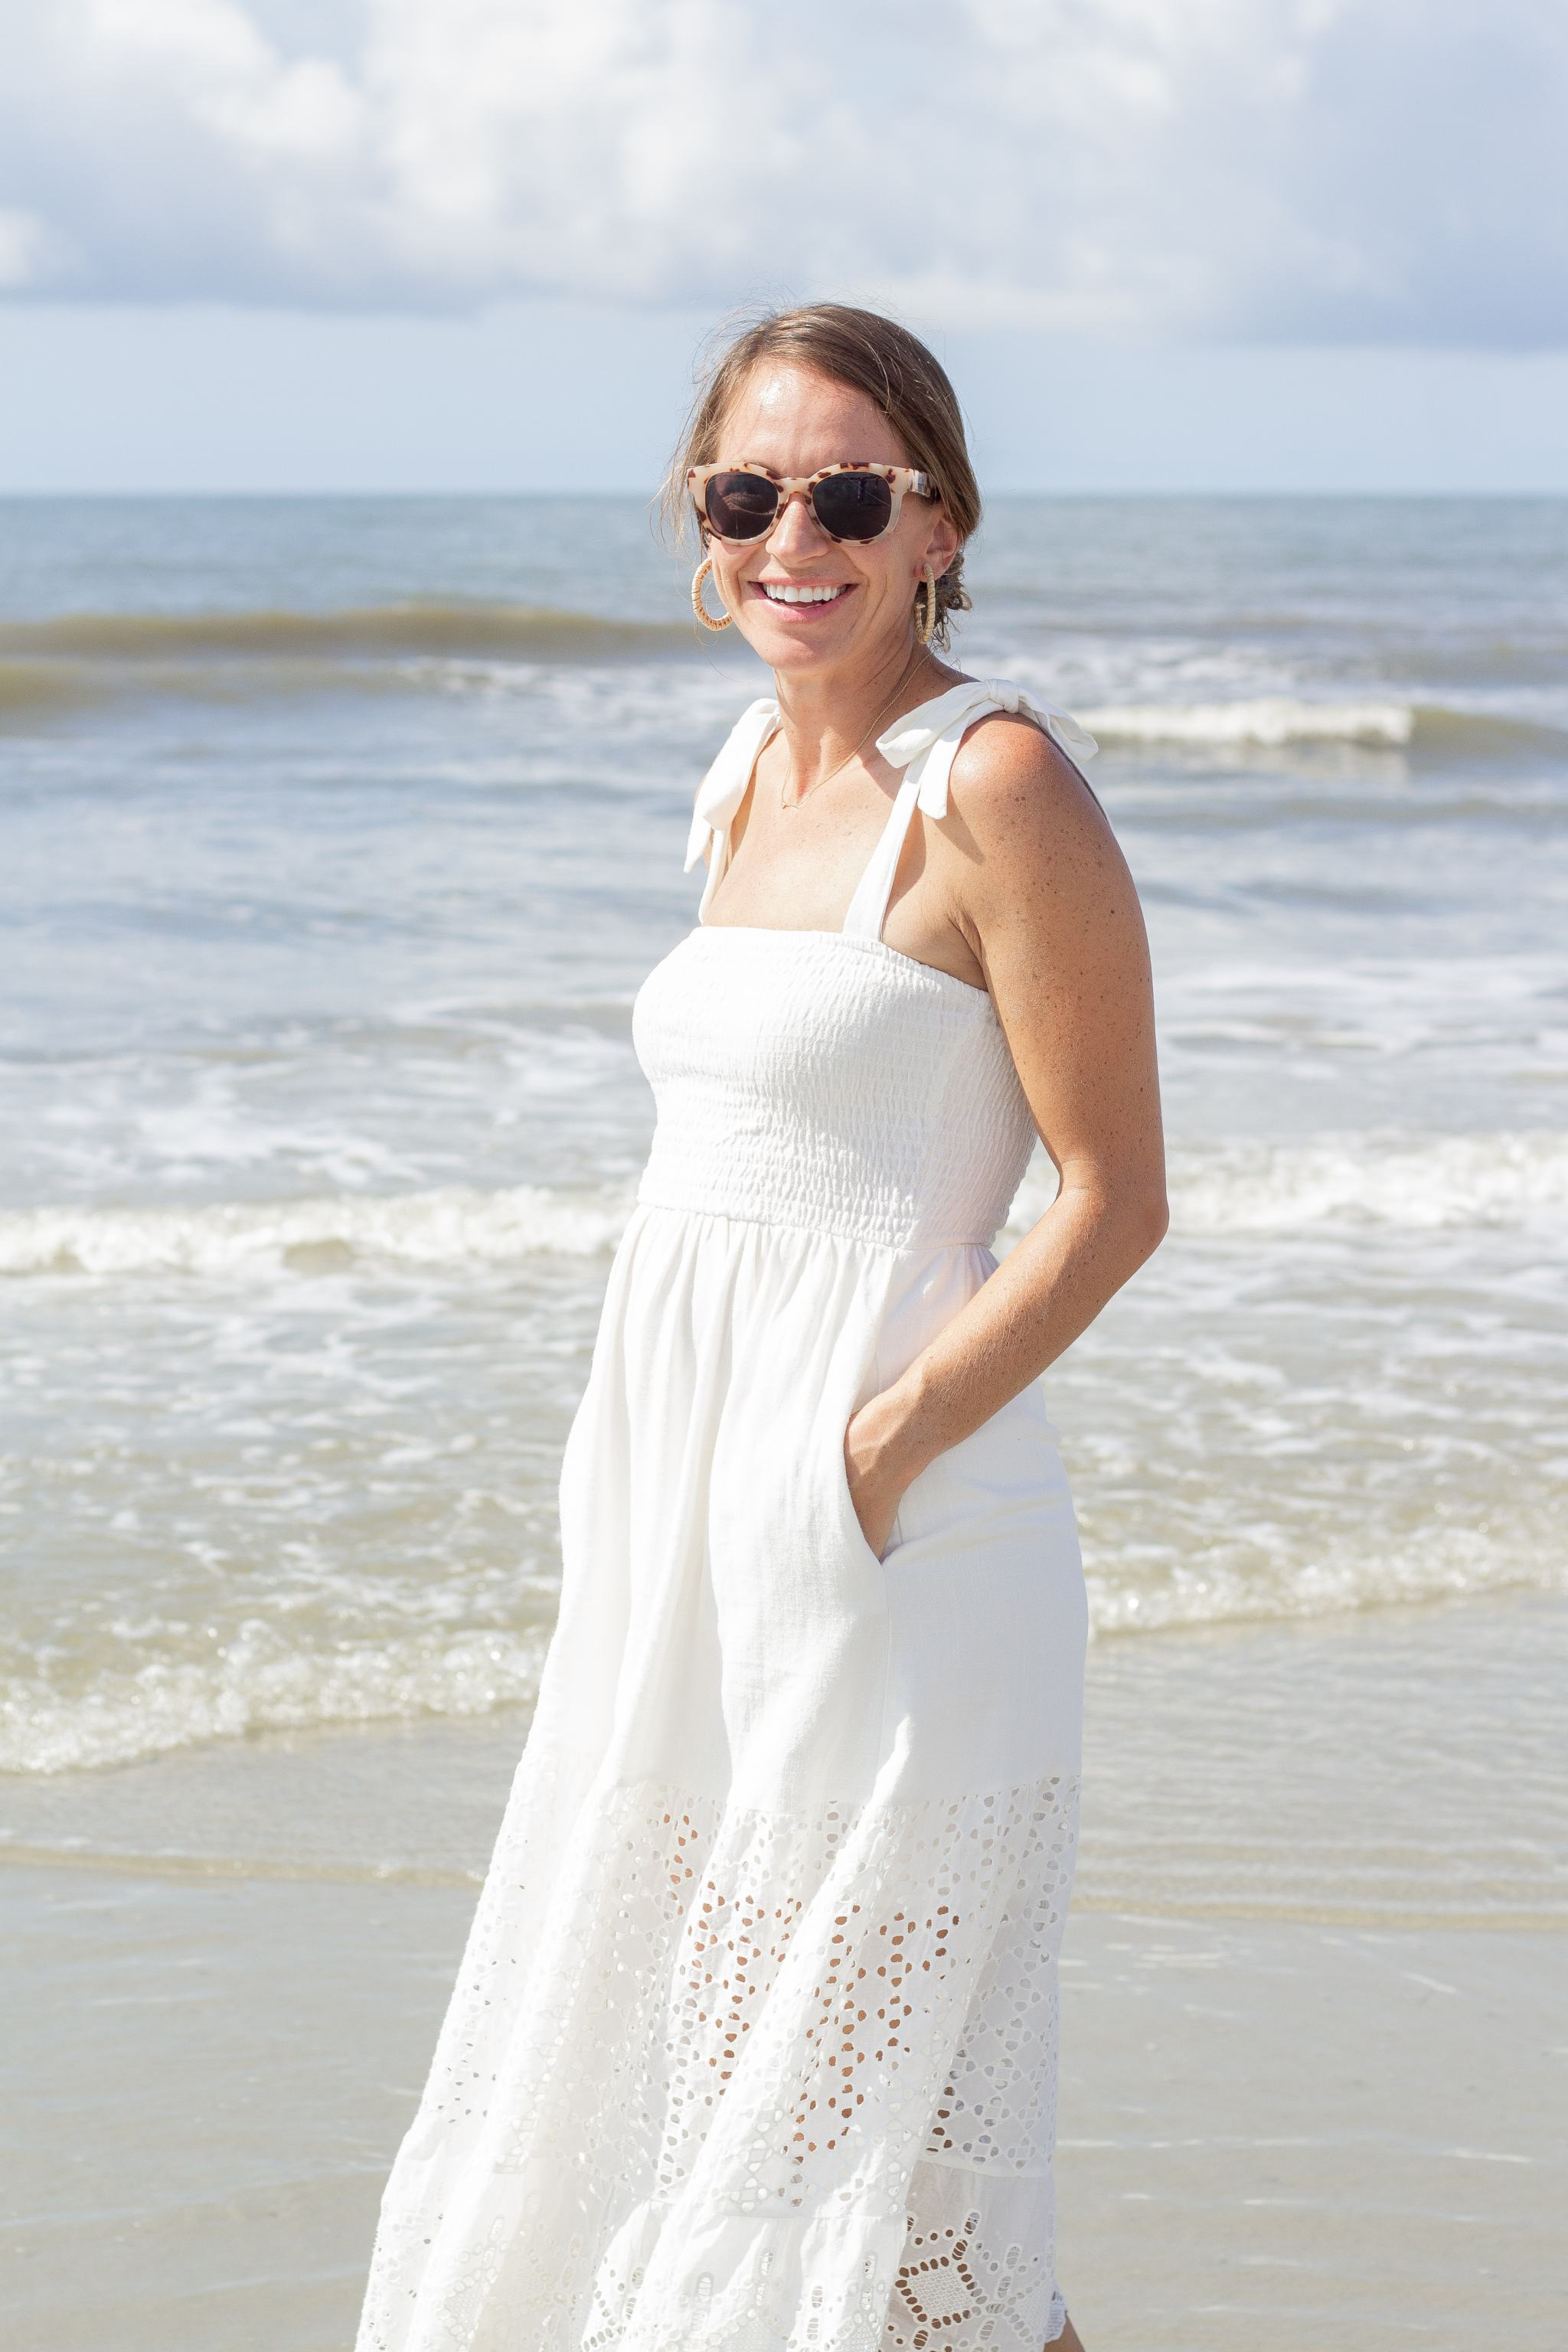 white dress - summer dresses - classic white dress - eyelet dress - rattan earrings - rattan hoops - tortoise sunglasses - tortoise shell sunglasses - beach photo outfit